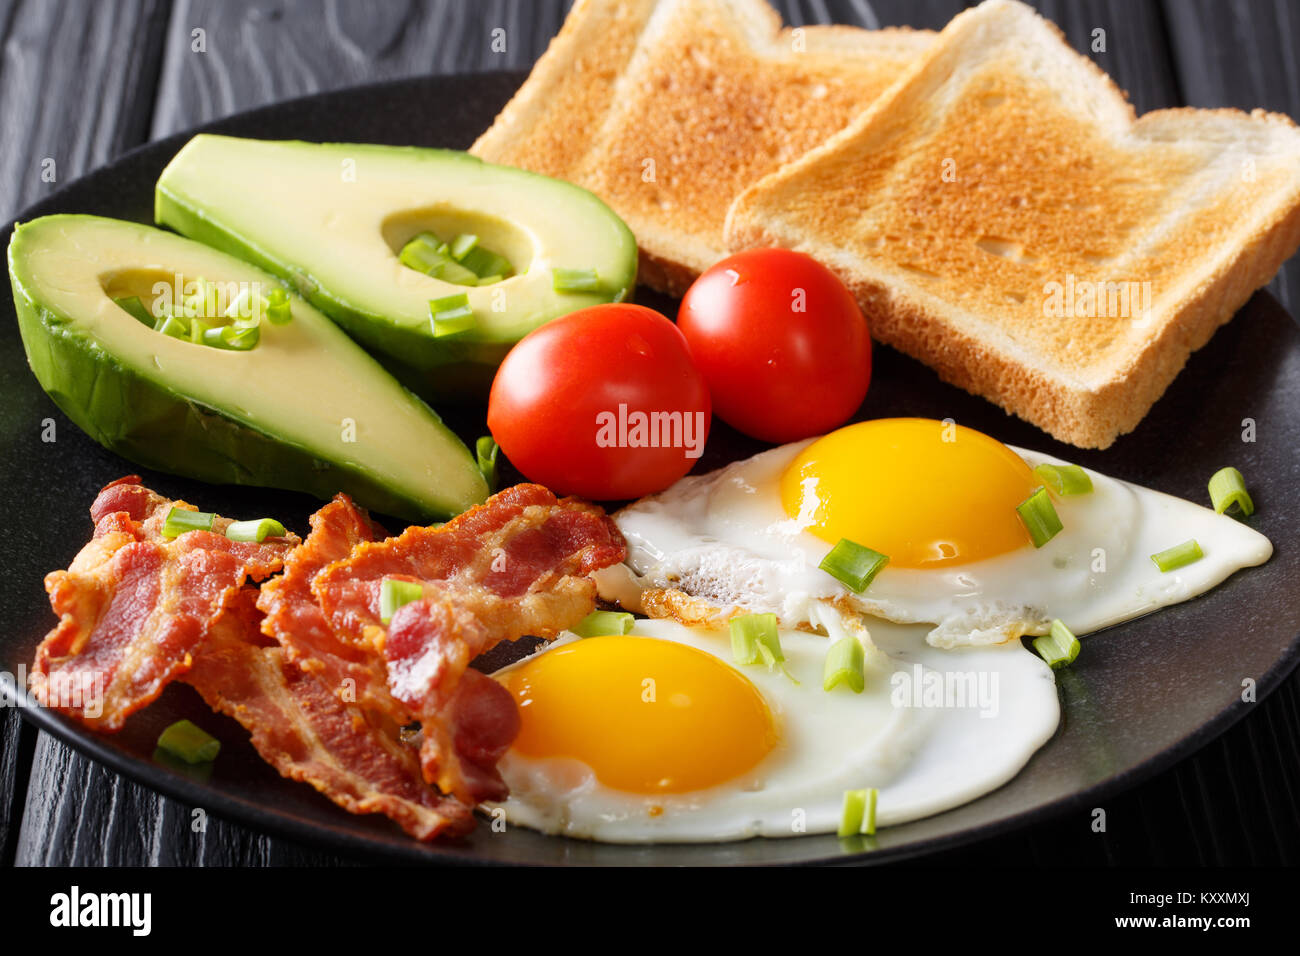 hearty breakfast: fried eggs with bacon, avocado, toast and tomatoes close-up on a plate on a table. horizontal - Stock Image